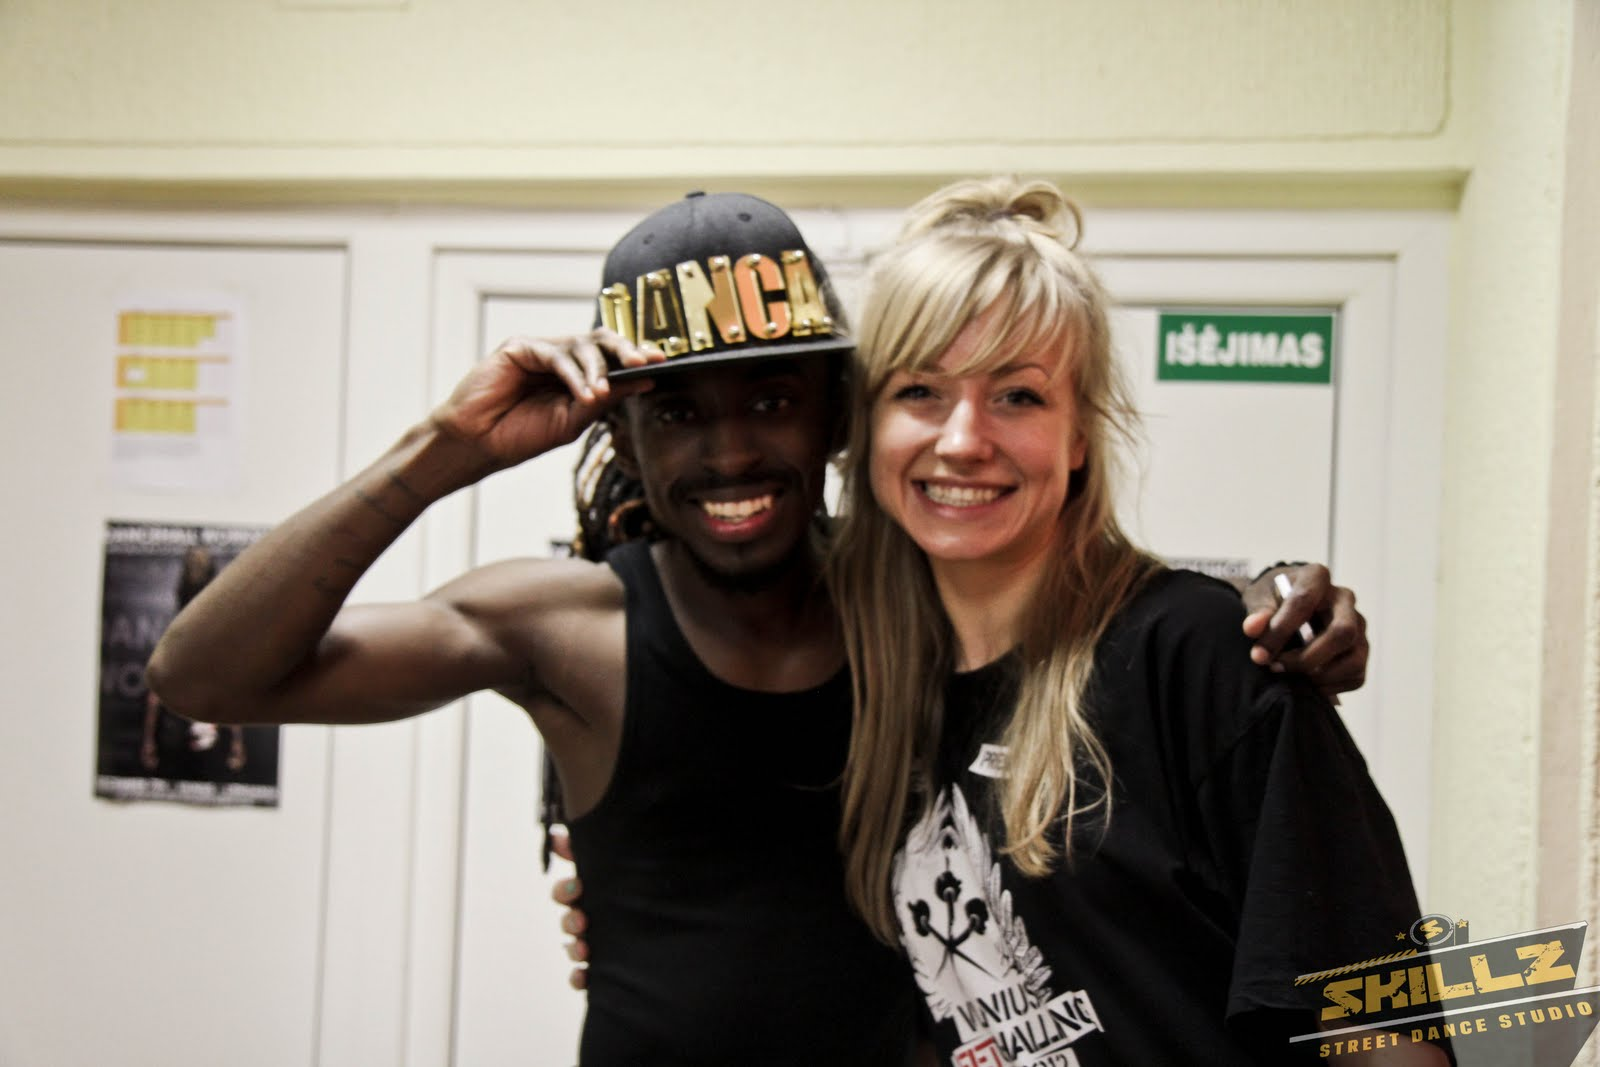 Dancehall workshop with Black Di Danca (USA, New Y - IMG_6765.jpg